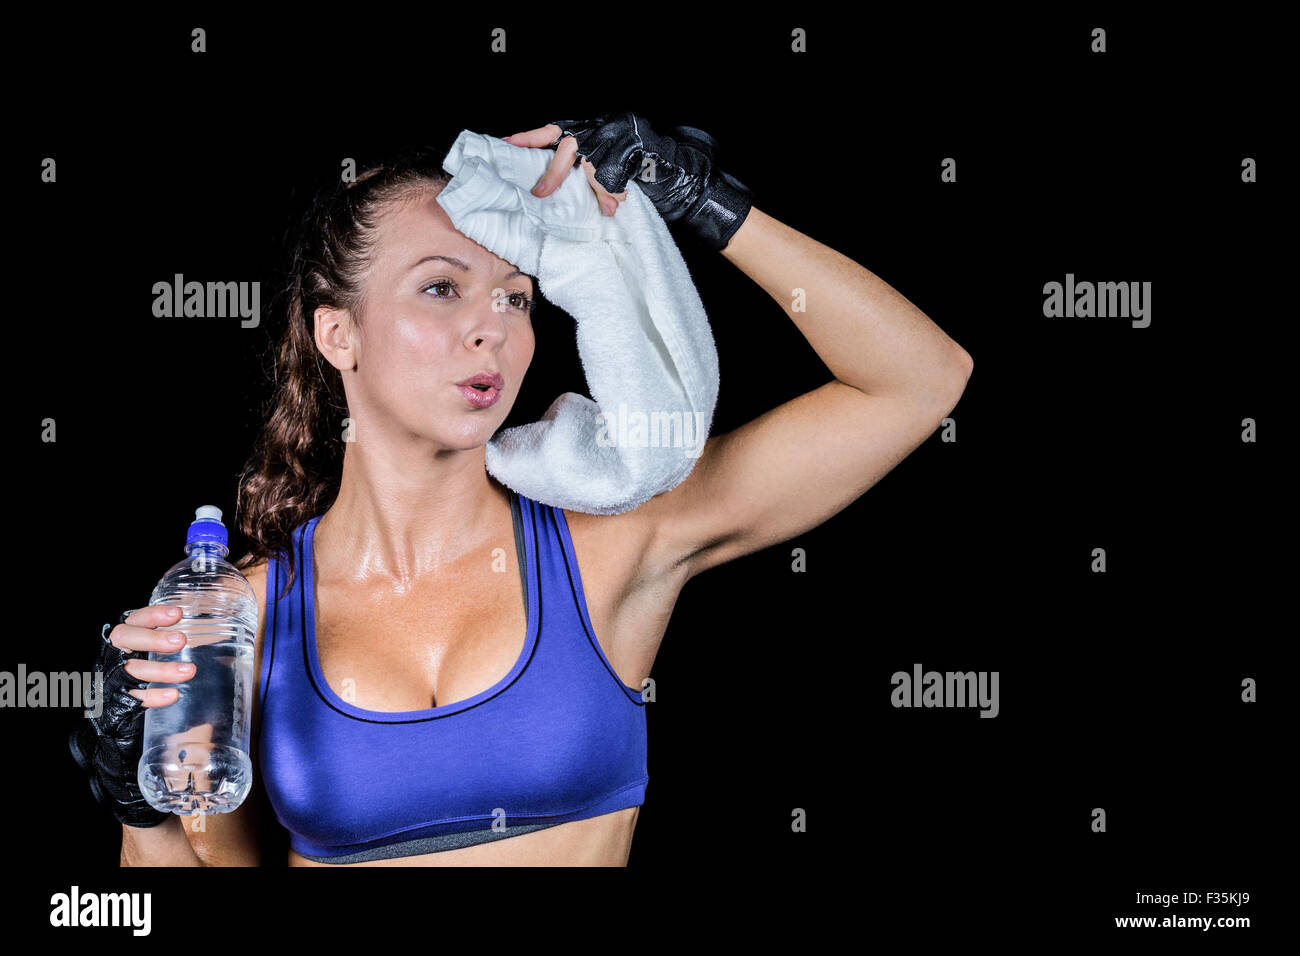 Tired woman wiping sweat while holding water bottle - Stock Image